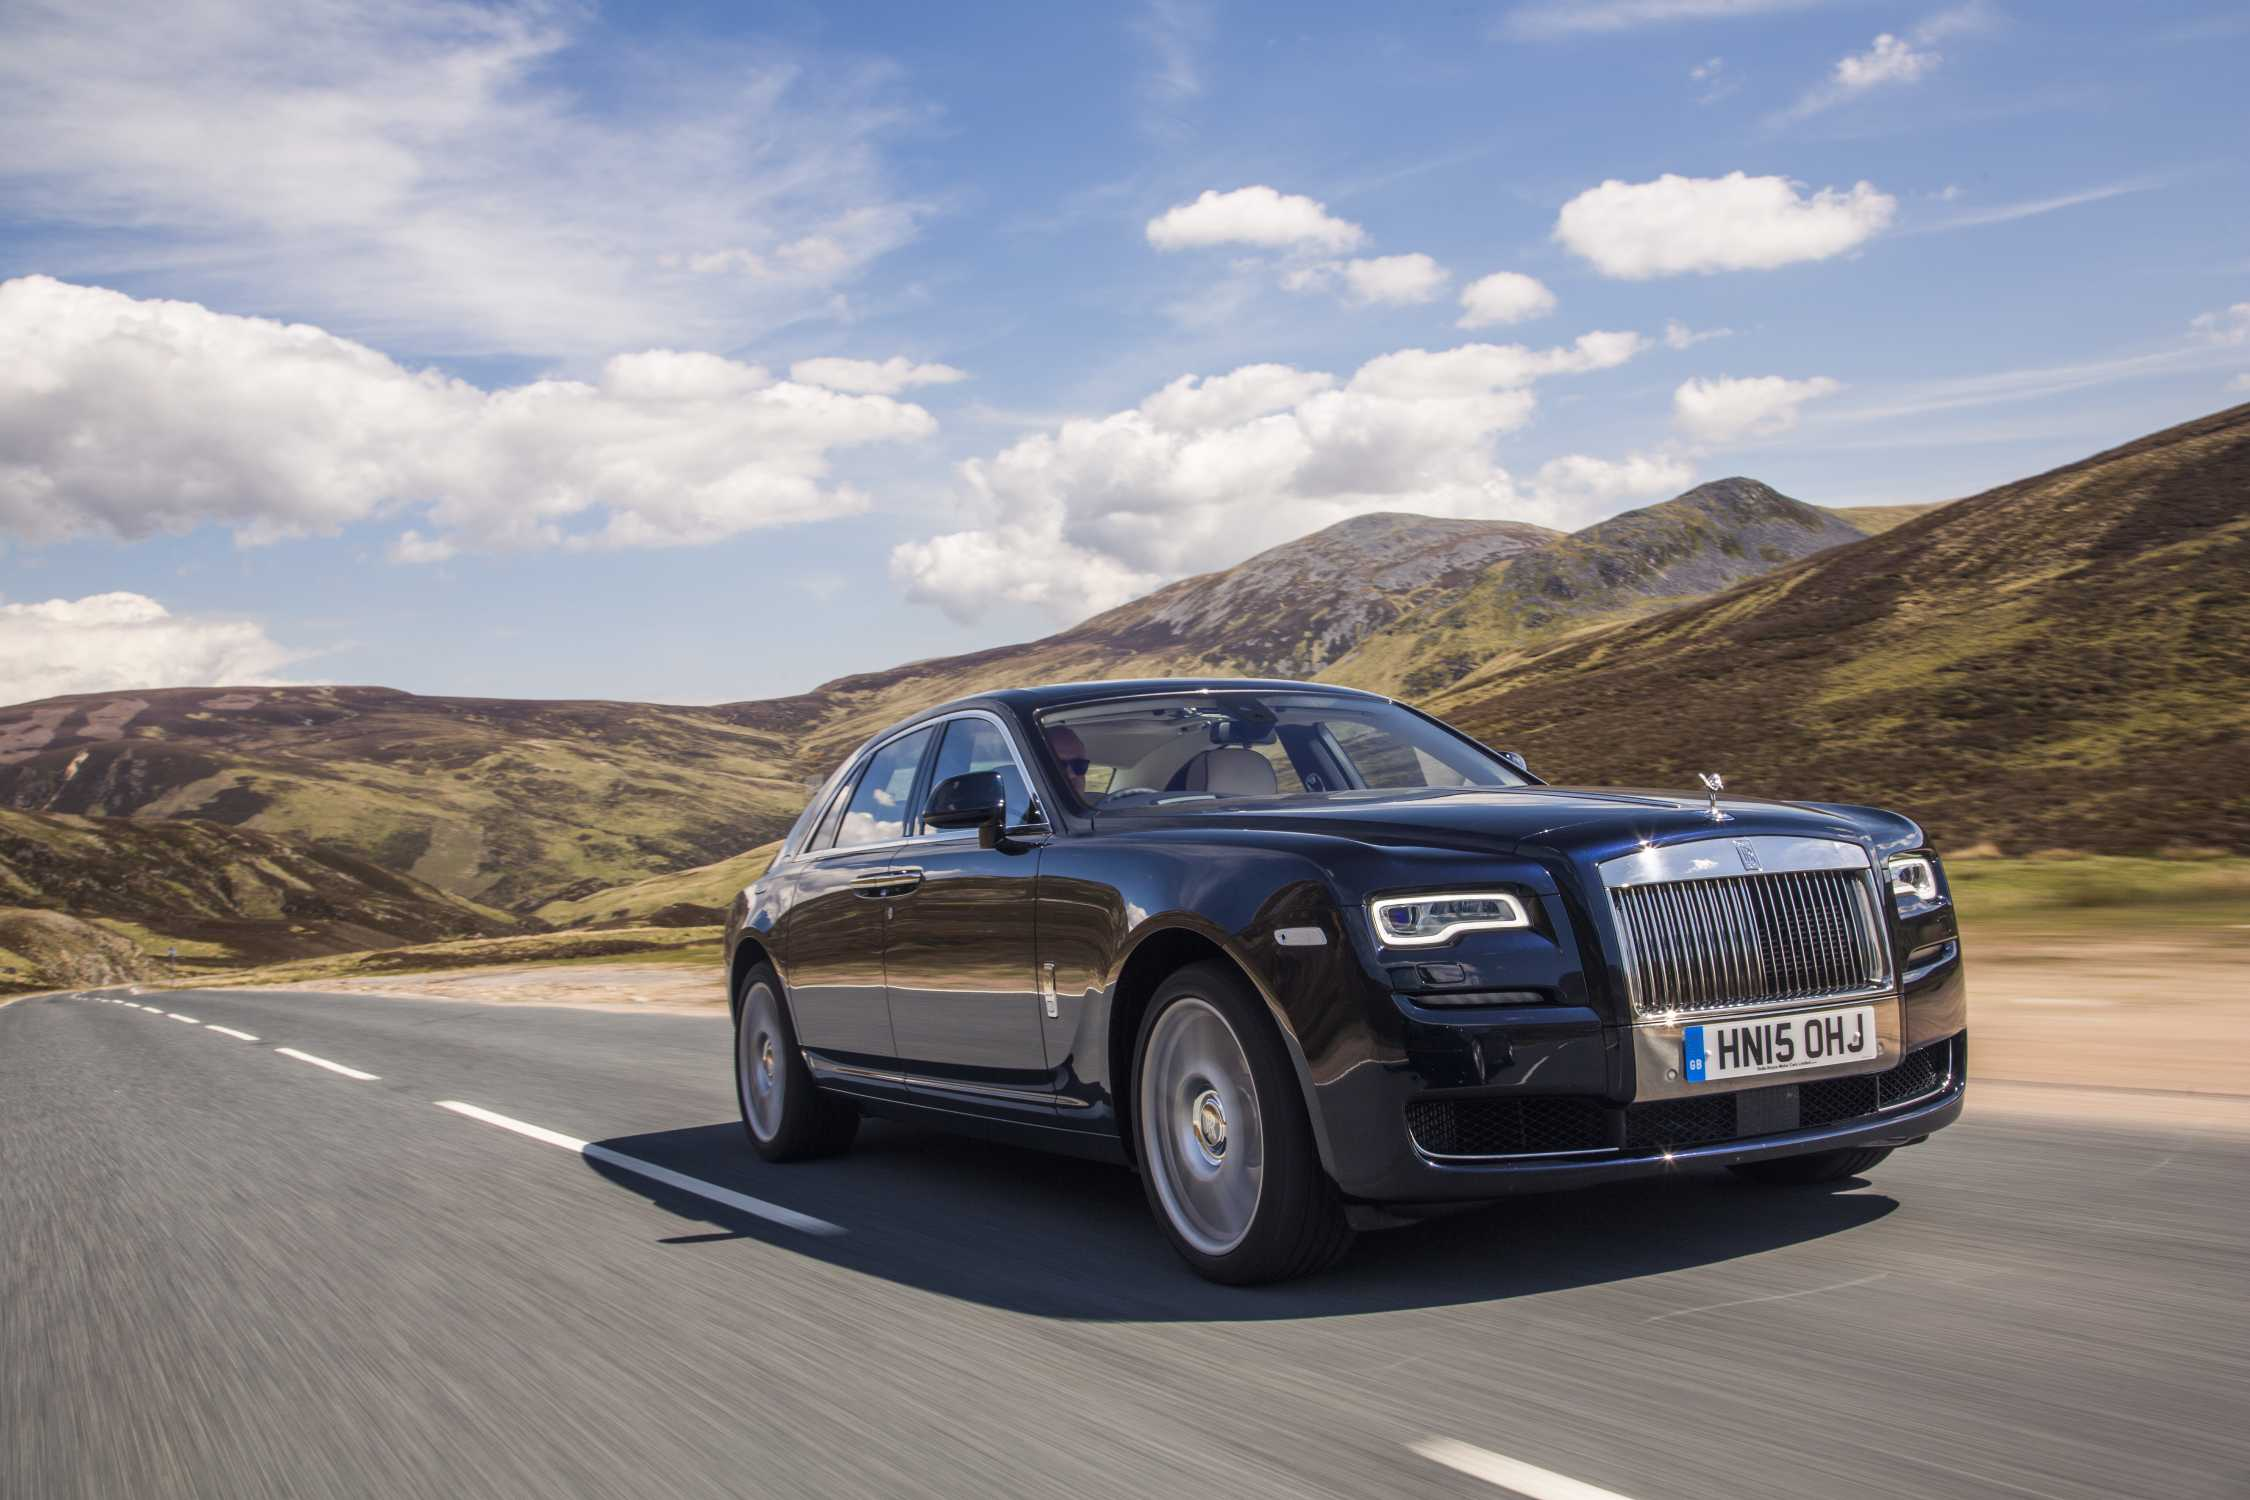 Rolls Royce Ghost Extended Wheelbase Named Best Super Luxury Car By What